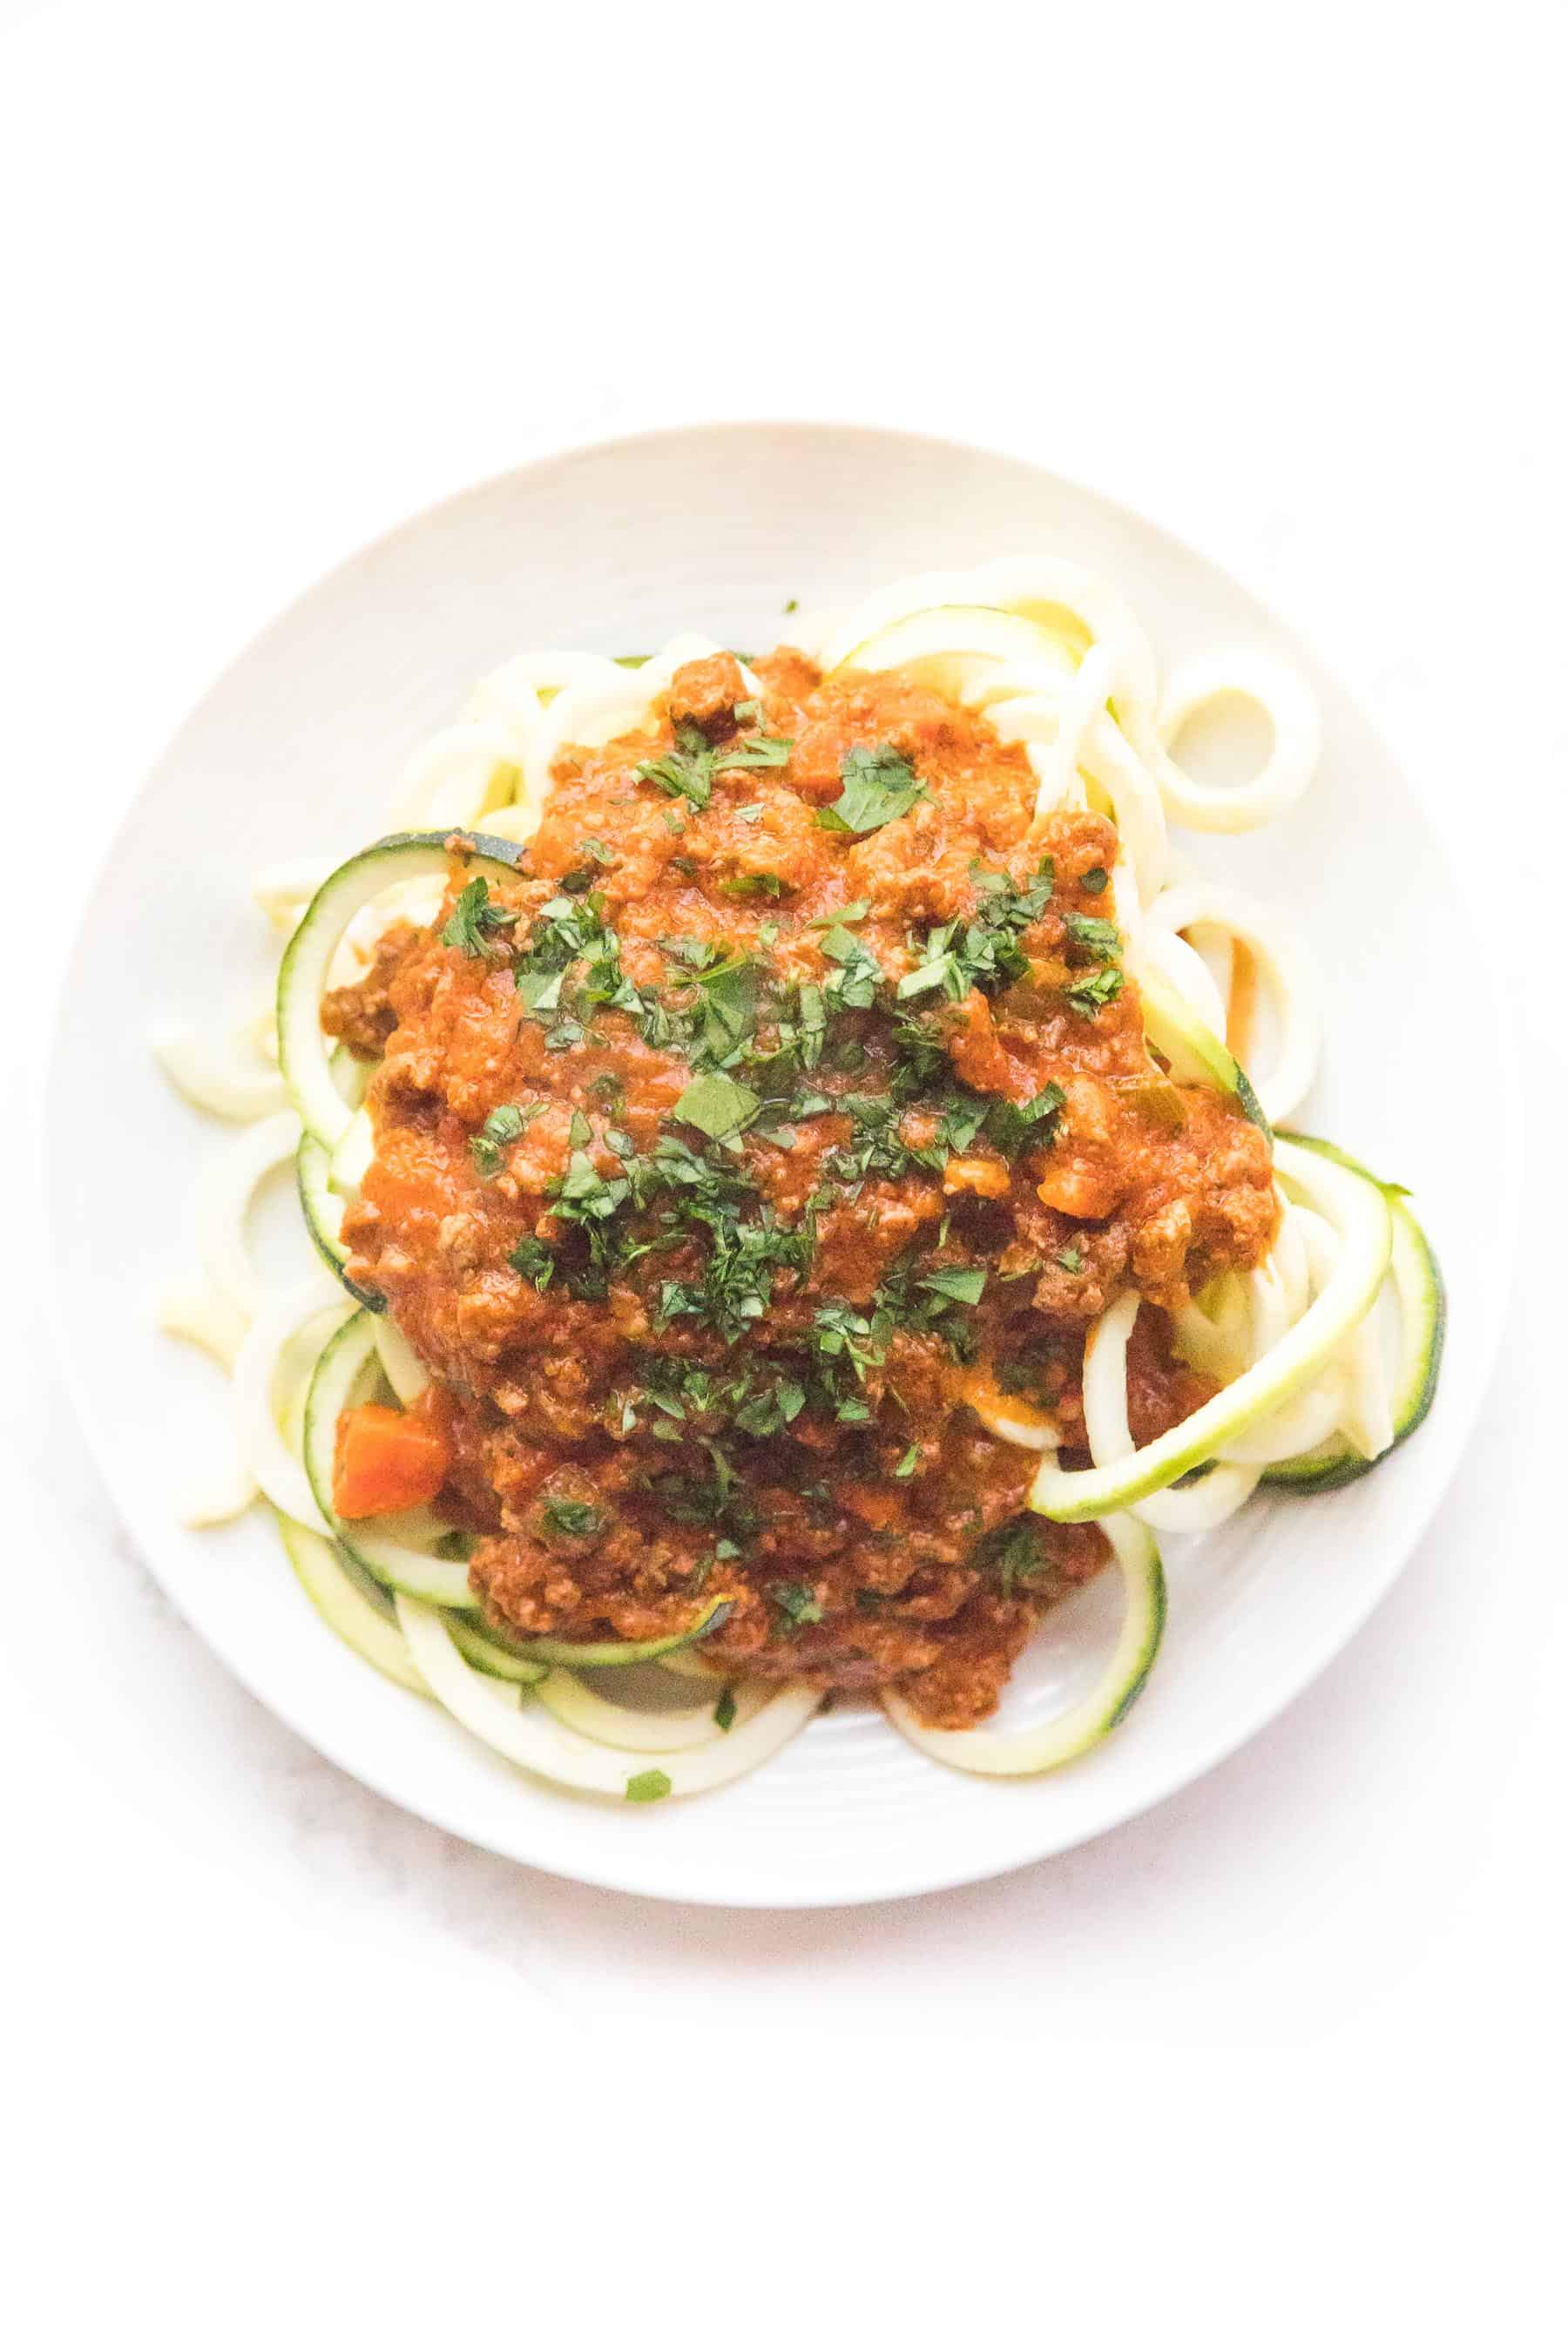 Zucchini noodles with red bolognese sauce on a white plate and background